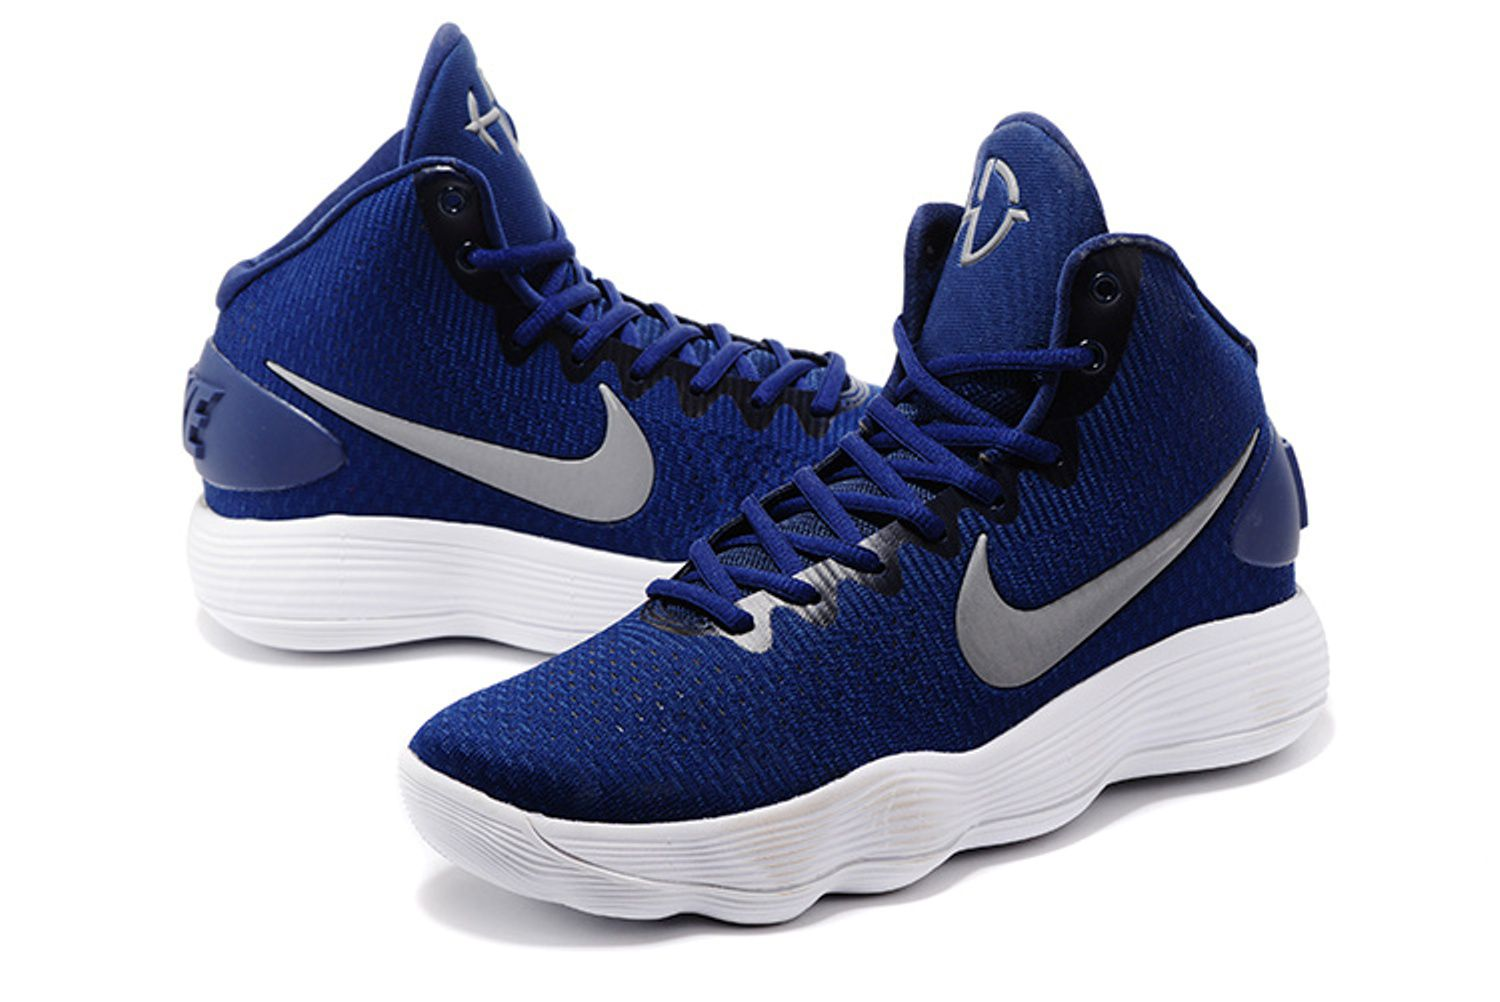 00d49e78ac74 Nike Hyperdunk 2017 Blue Basketball Shoes - Buy Nike Hyperdunk 2017 Blue  Basketball Shoes Online at Best Prices in India on Snapdeal